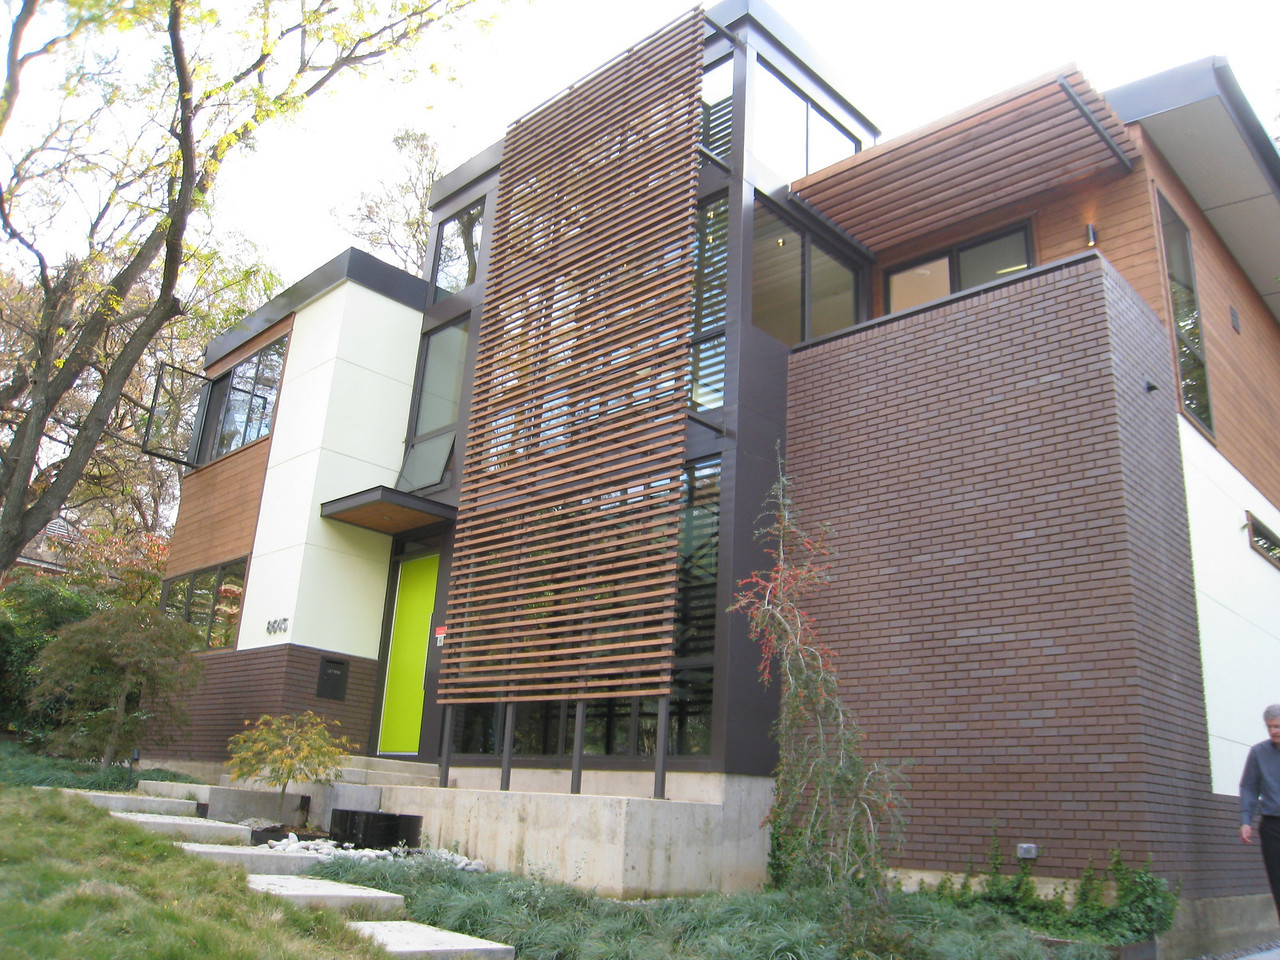 8645 Labron - LOVED this house. This was my favorite. Pending LEED Platinum certification.